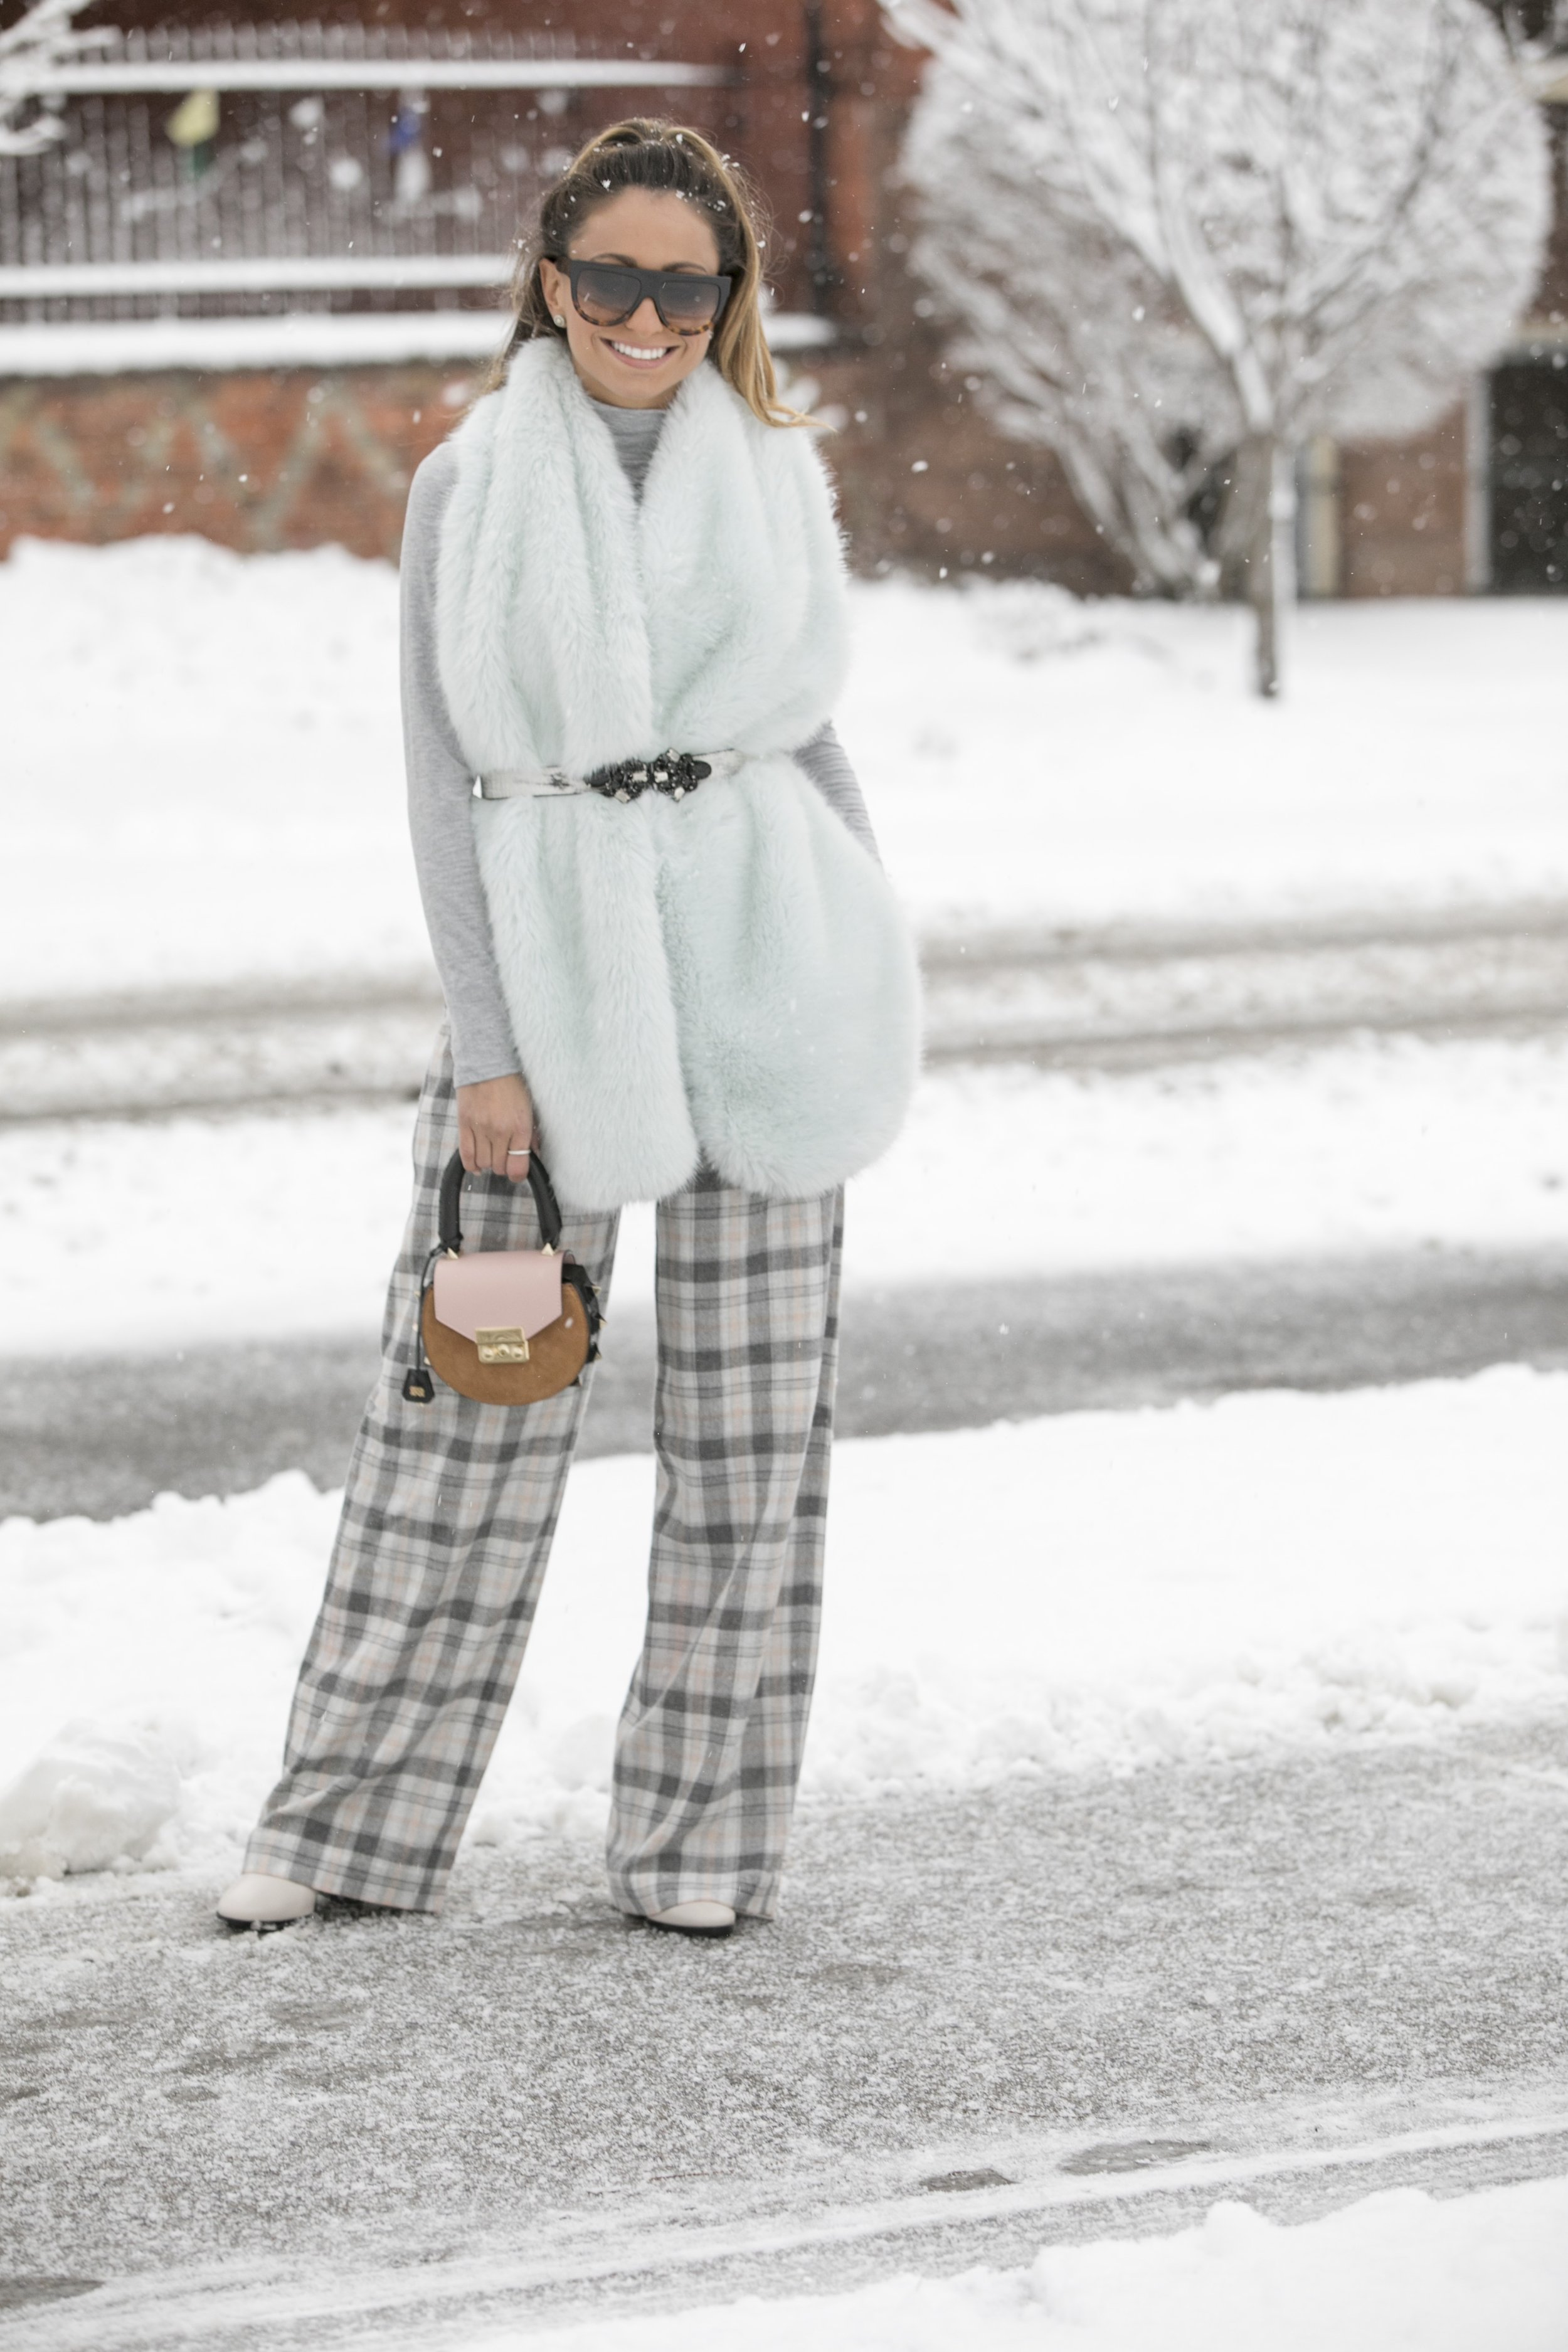 winter chic style in fur and plaid